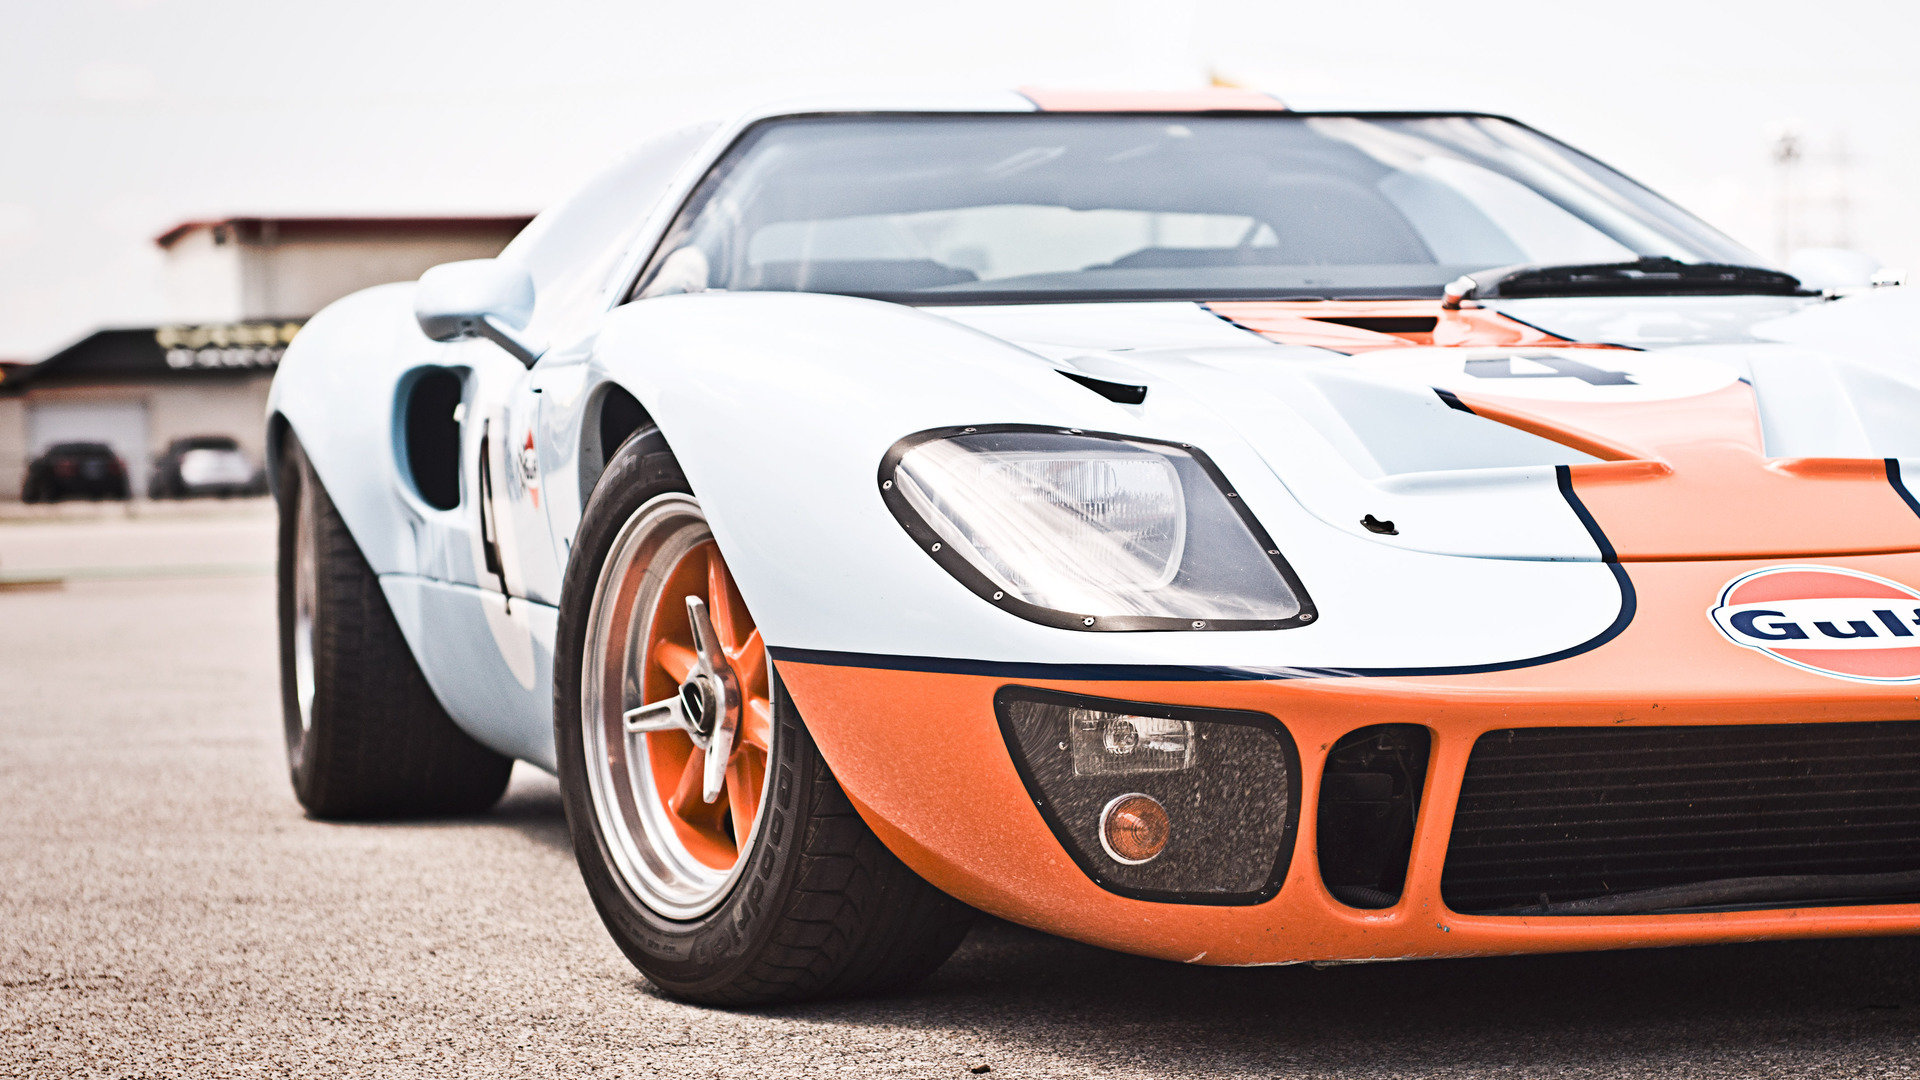 Ford Gt40 Wallpapers Hd For Desktop Backgrounds